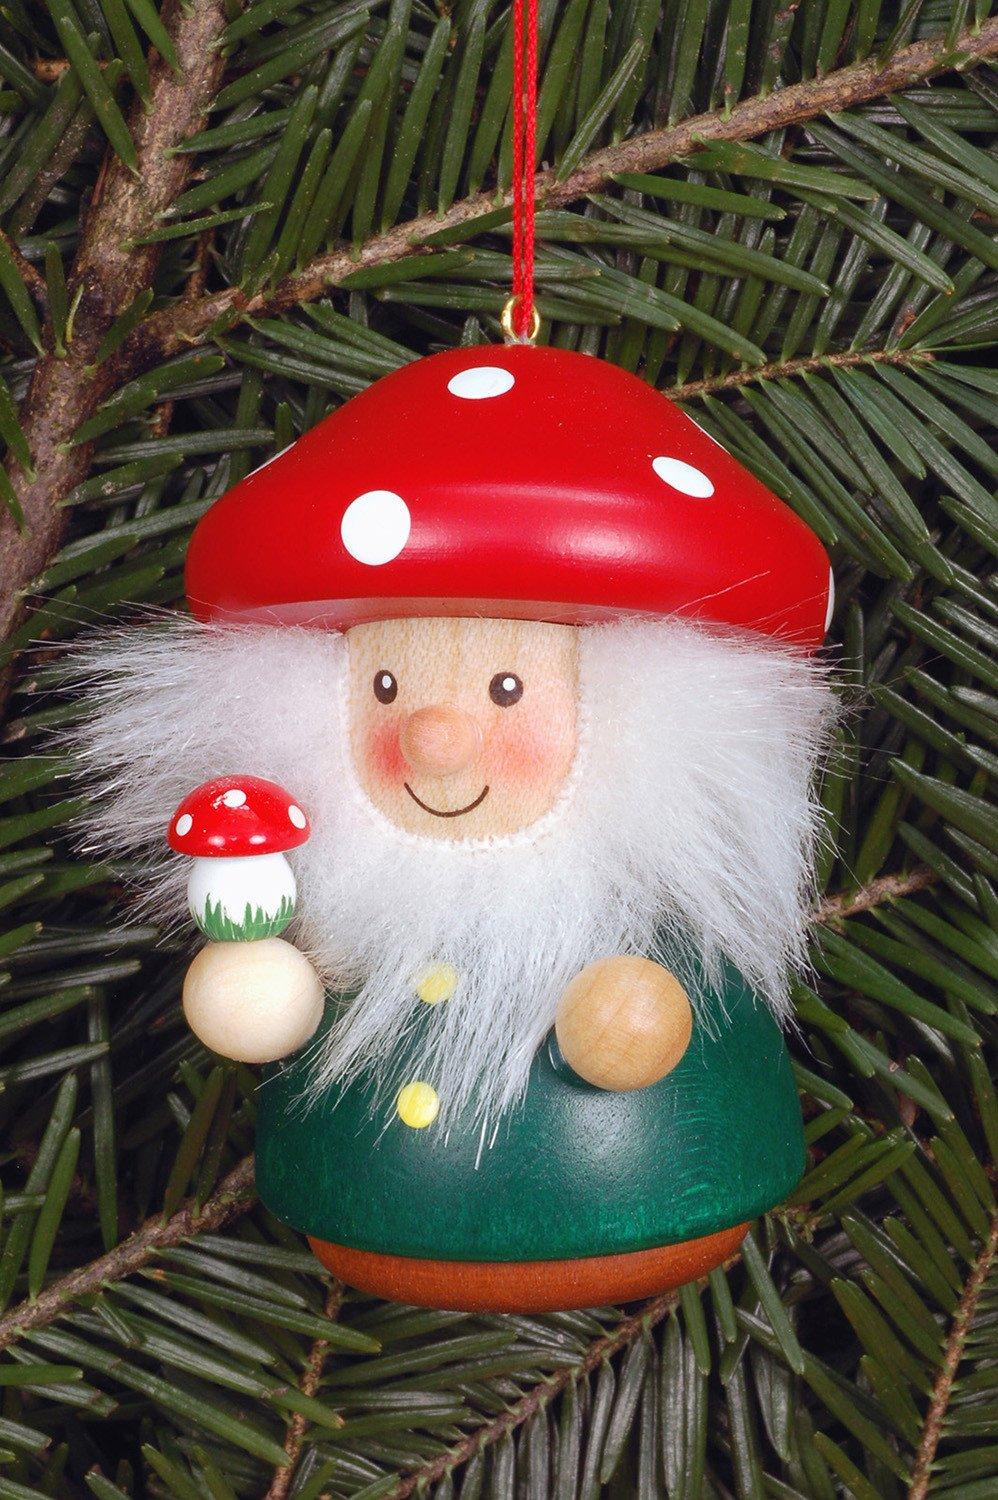 Little Gnome Christmas Tree Decoration Red Mushroom Man The German Christmas Shop Usa